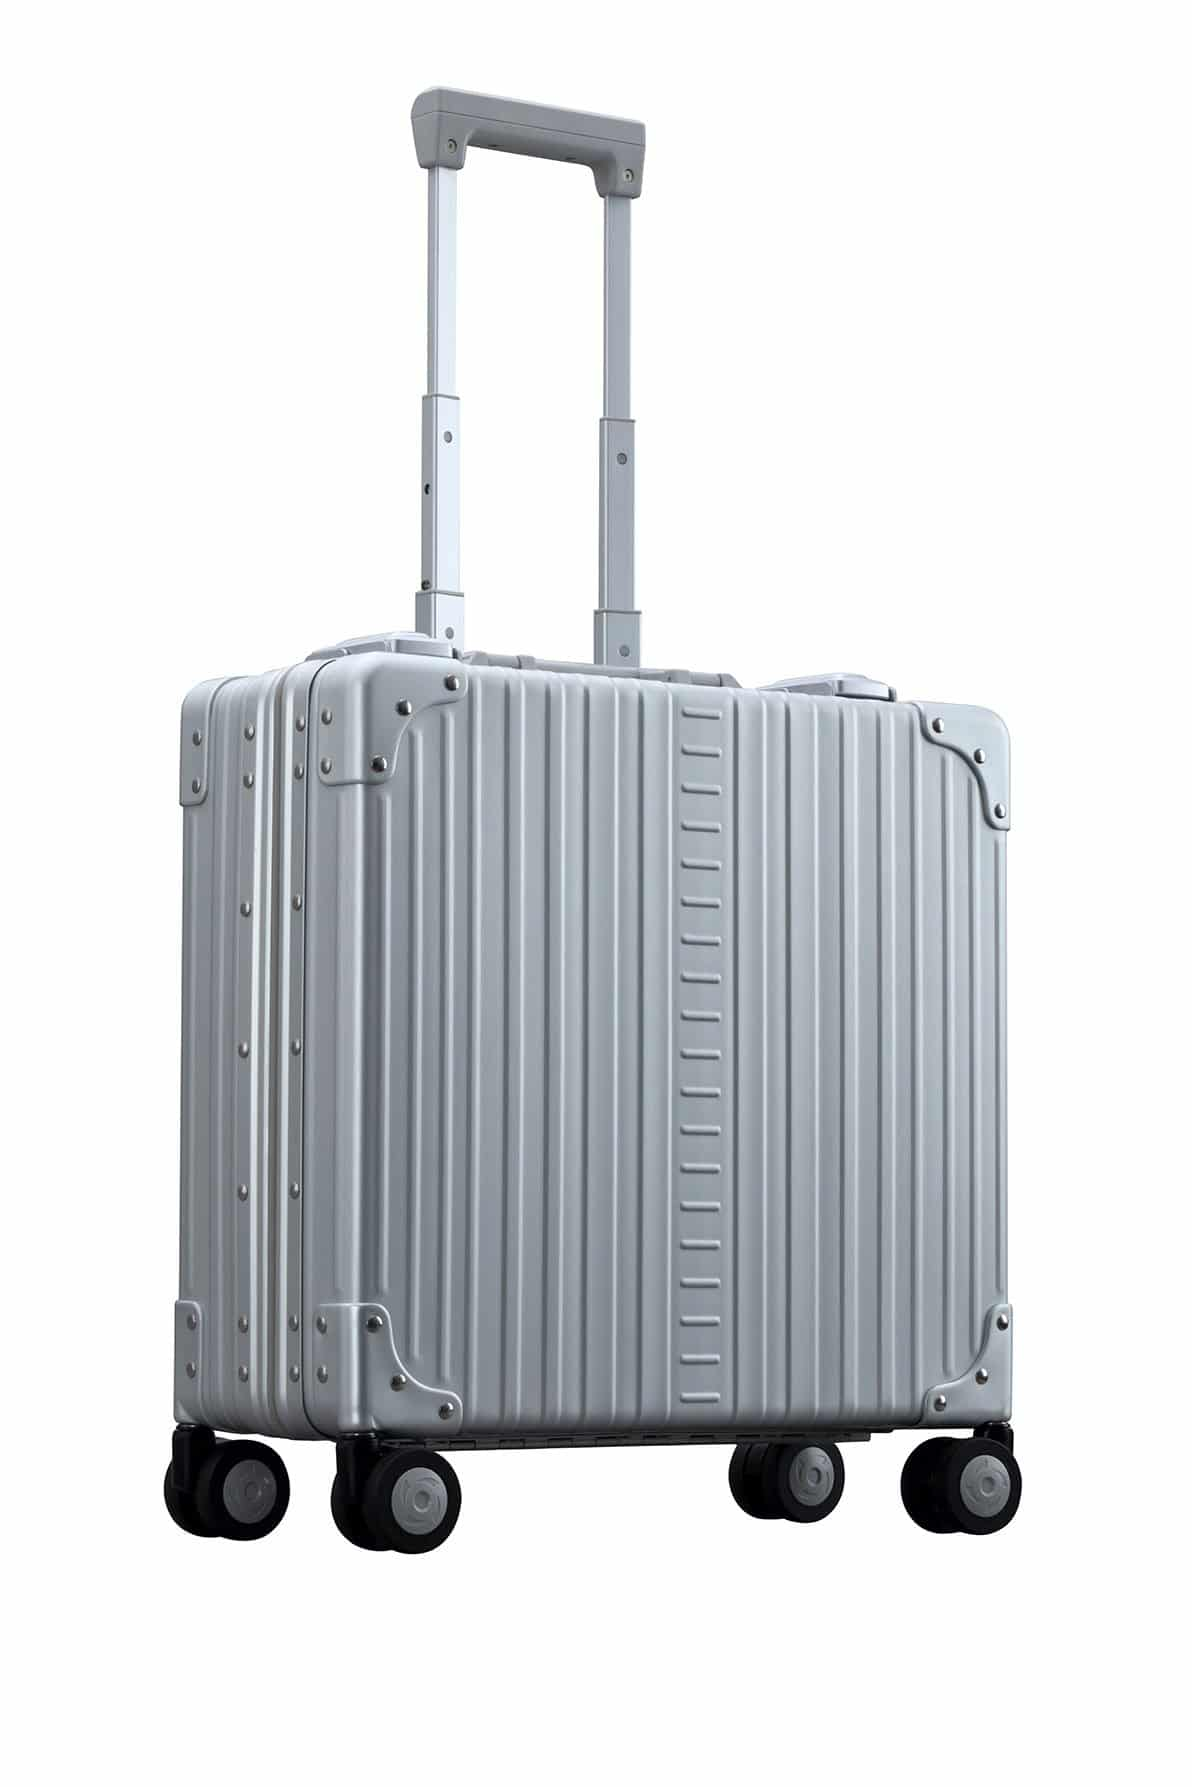 Wheeled Business Case briefcase made with aluminum